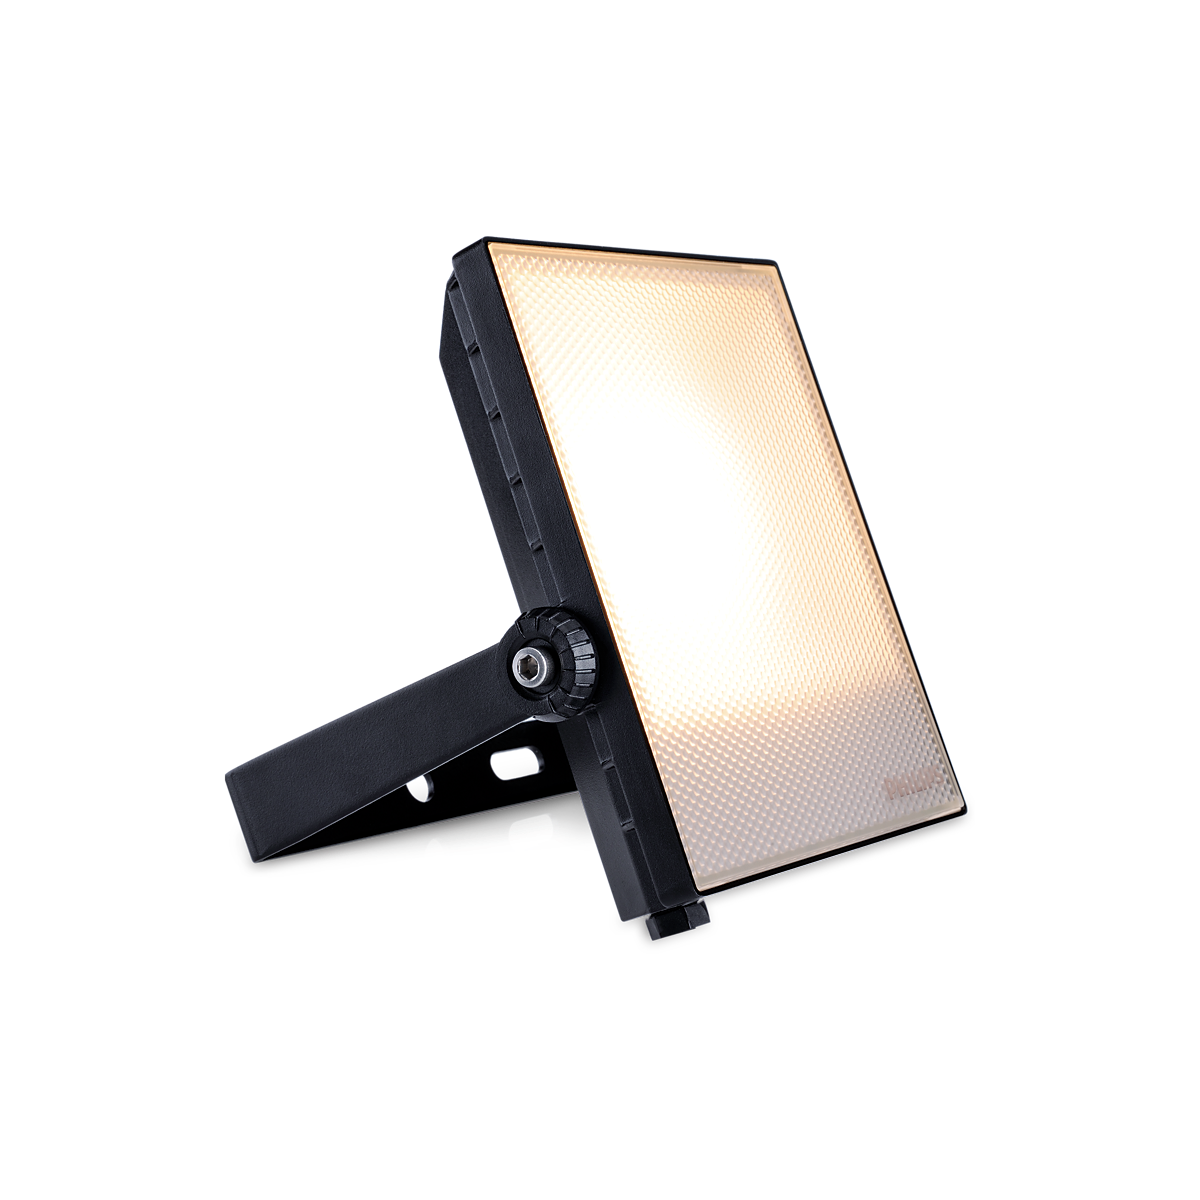 Essential SmartBright G2 LED Floodlight